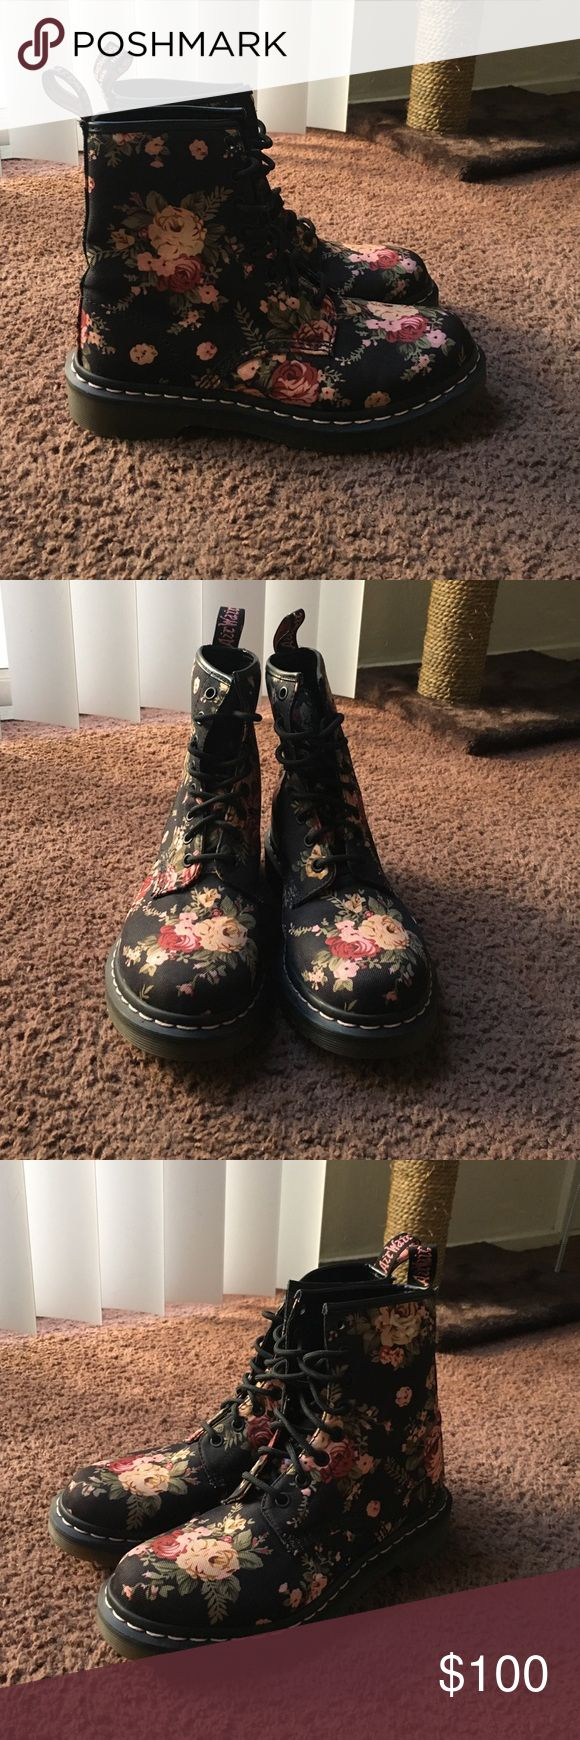 Doc Marten Floral Boots Black Doc Martens with floral print. Worn once, in excellent condition. Doc Martens  Shoes Combat & Moto Boots